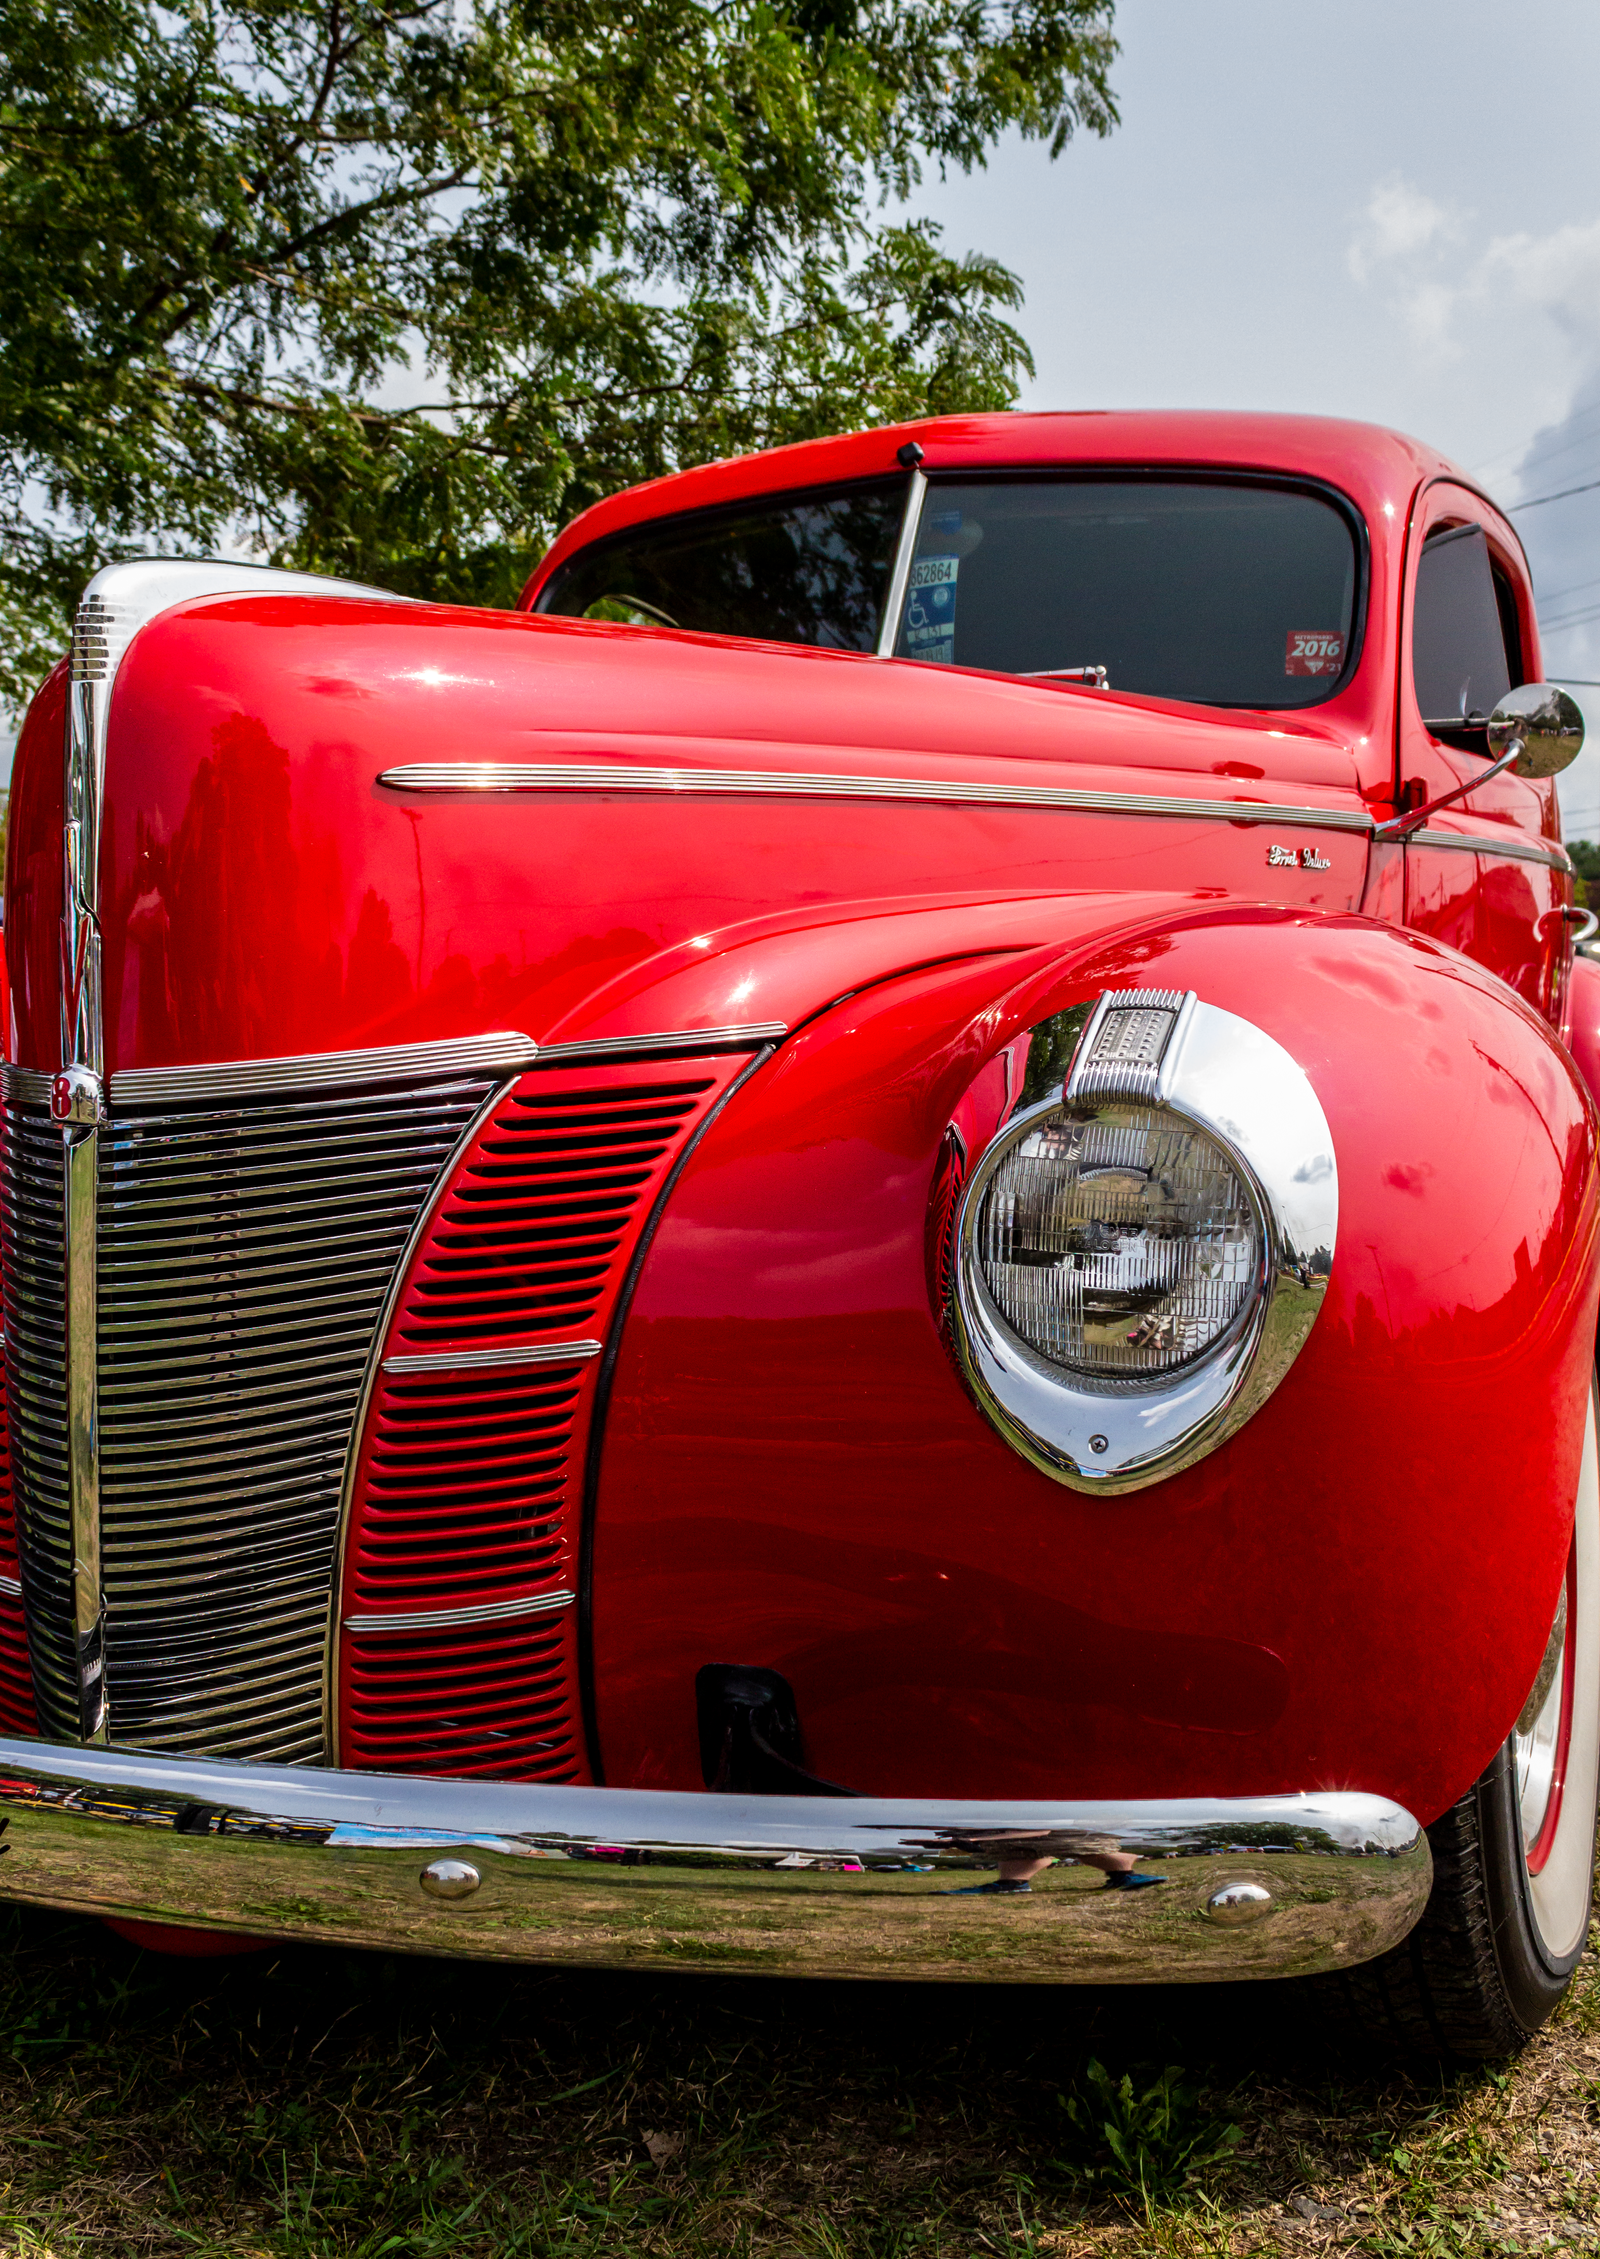 Ford Deluxe V8 by AaronMk